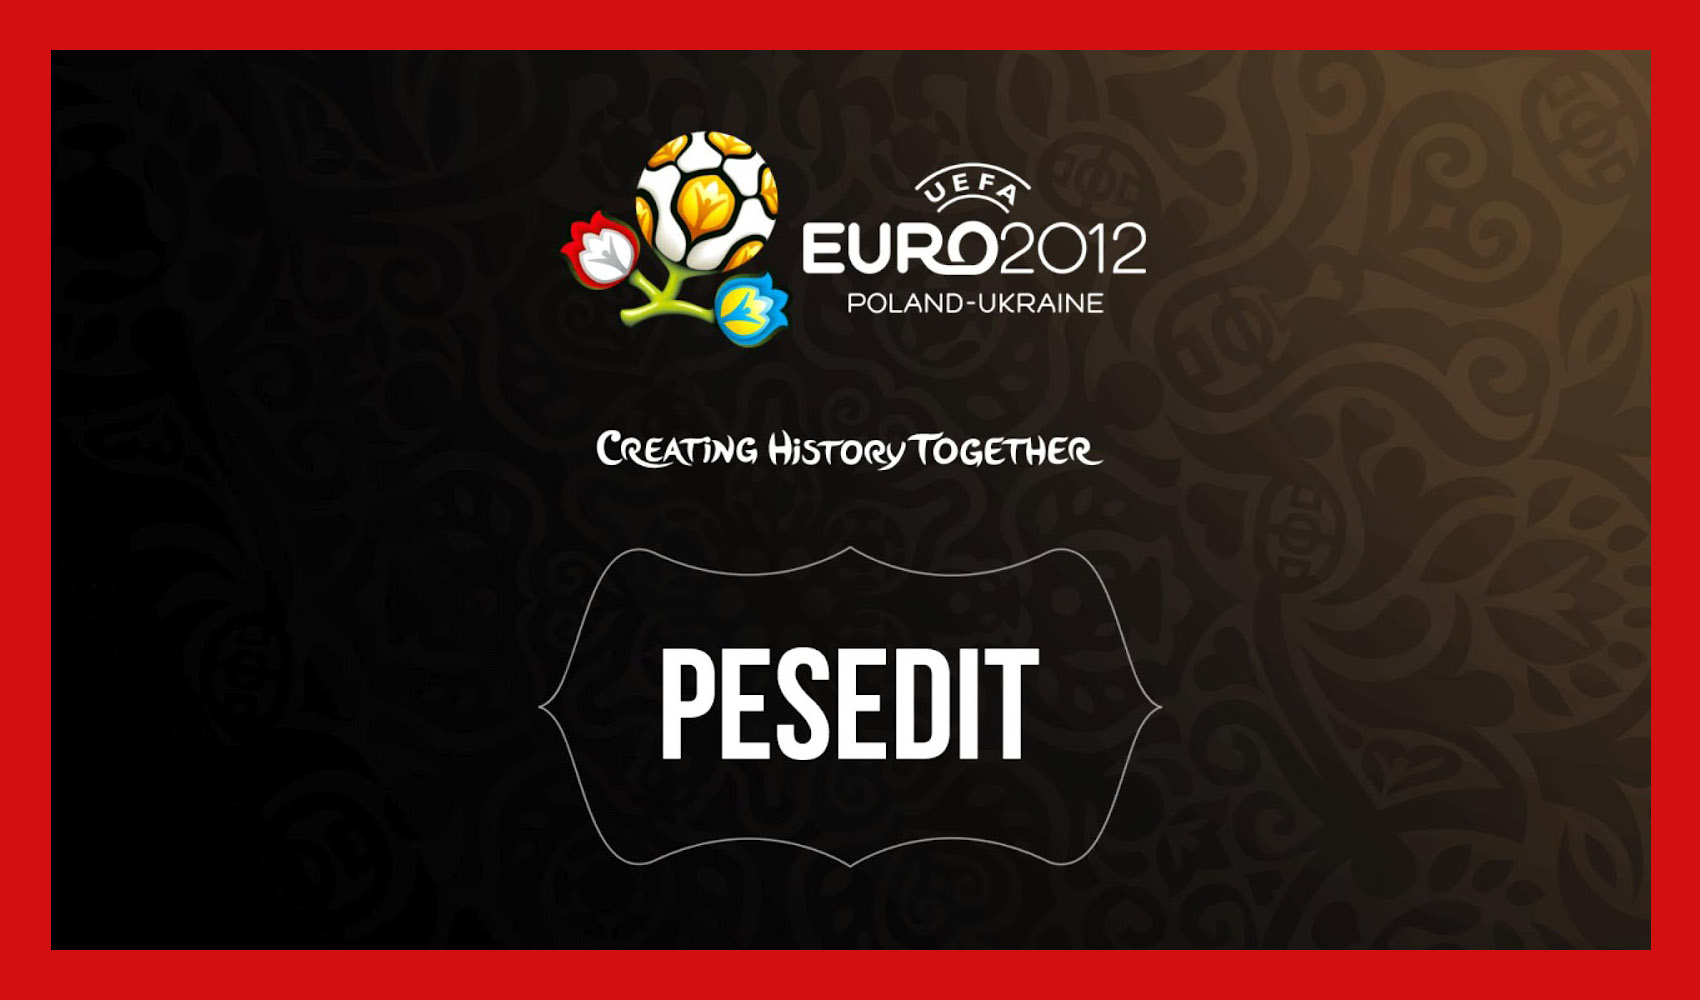 [Aporte] PESEdit.com EURO 2012 Patch [MF - Mi Subida!]